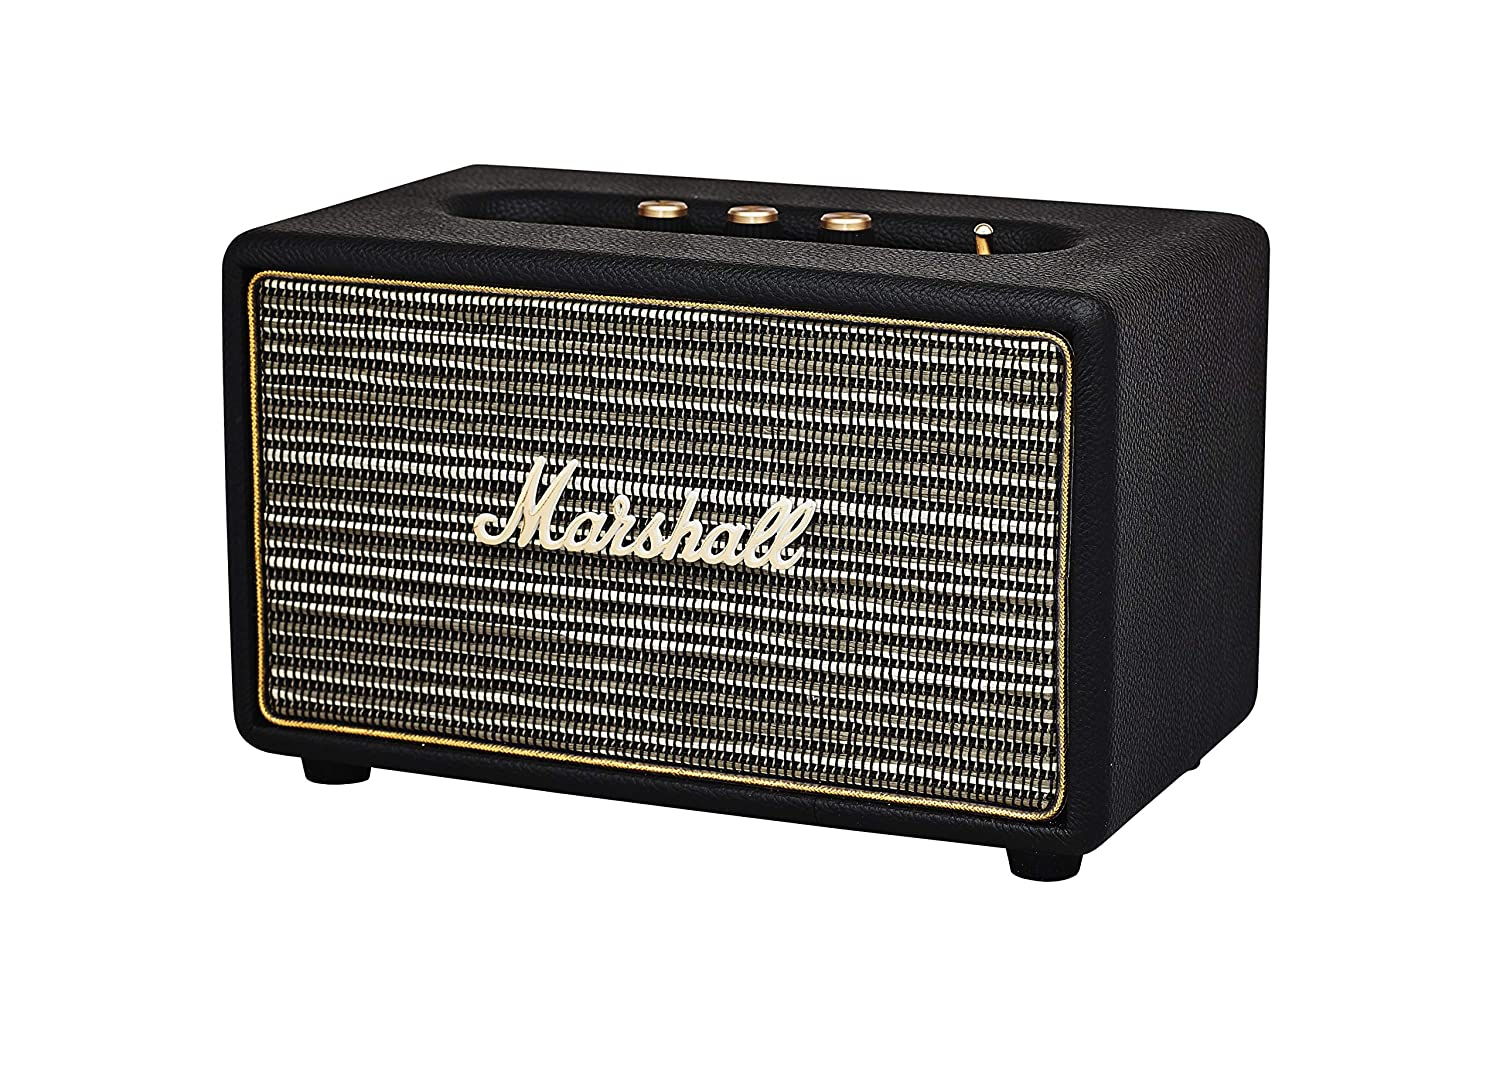 Marshall Acton Bluetooth Altavoz con Cable, Negro